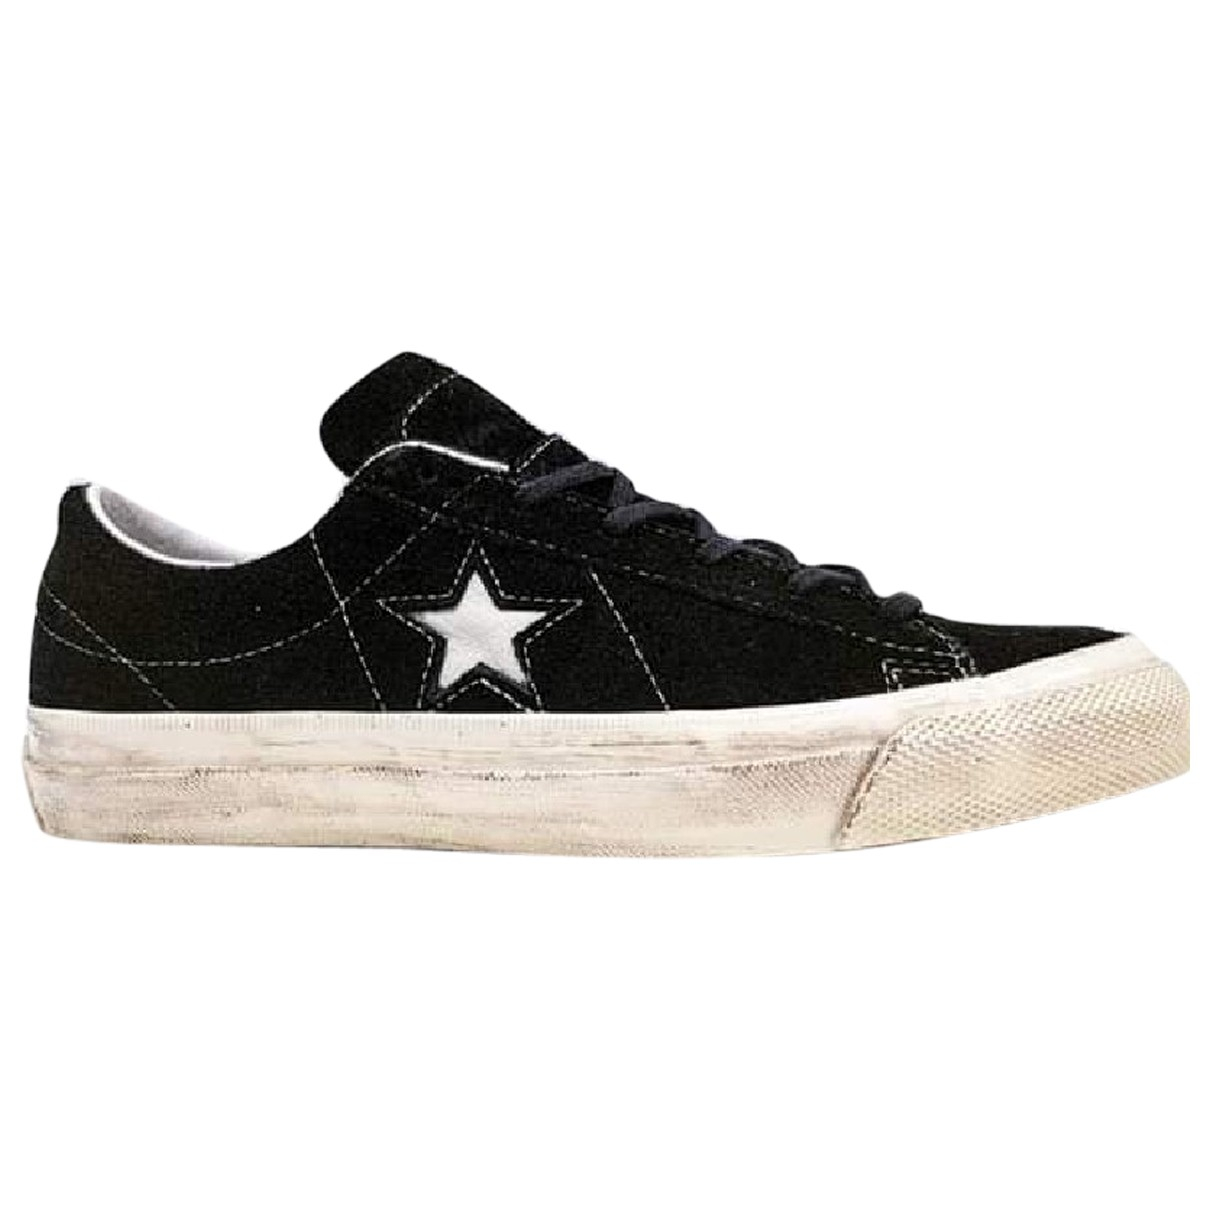 Converse N Black Suede Trainers for Women 38 EU